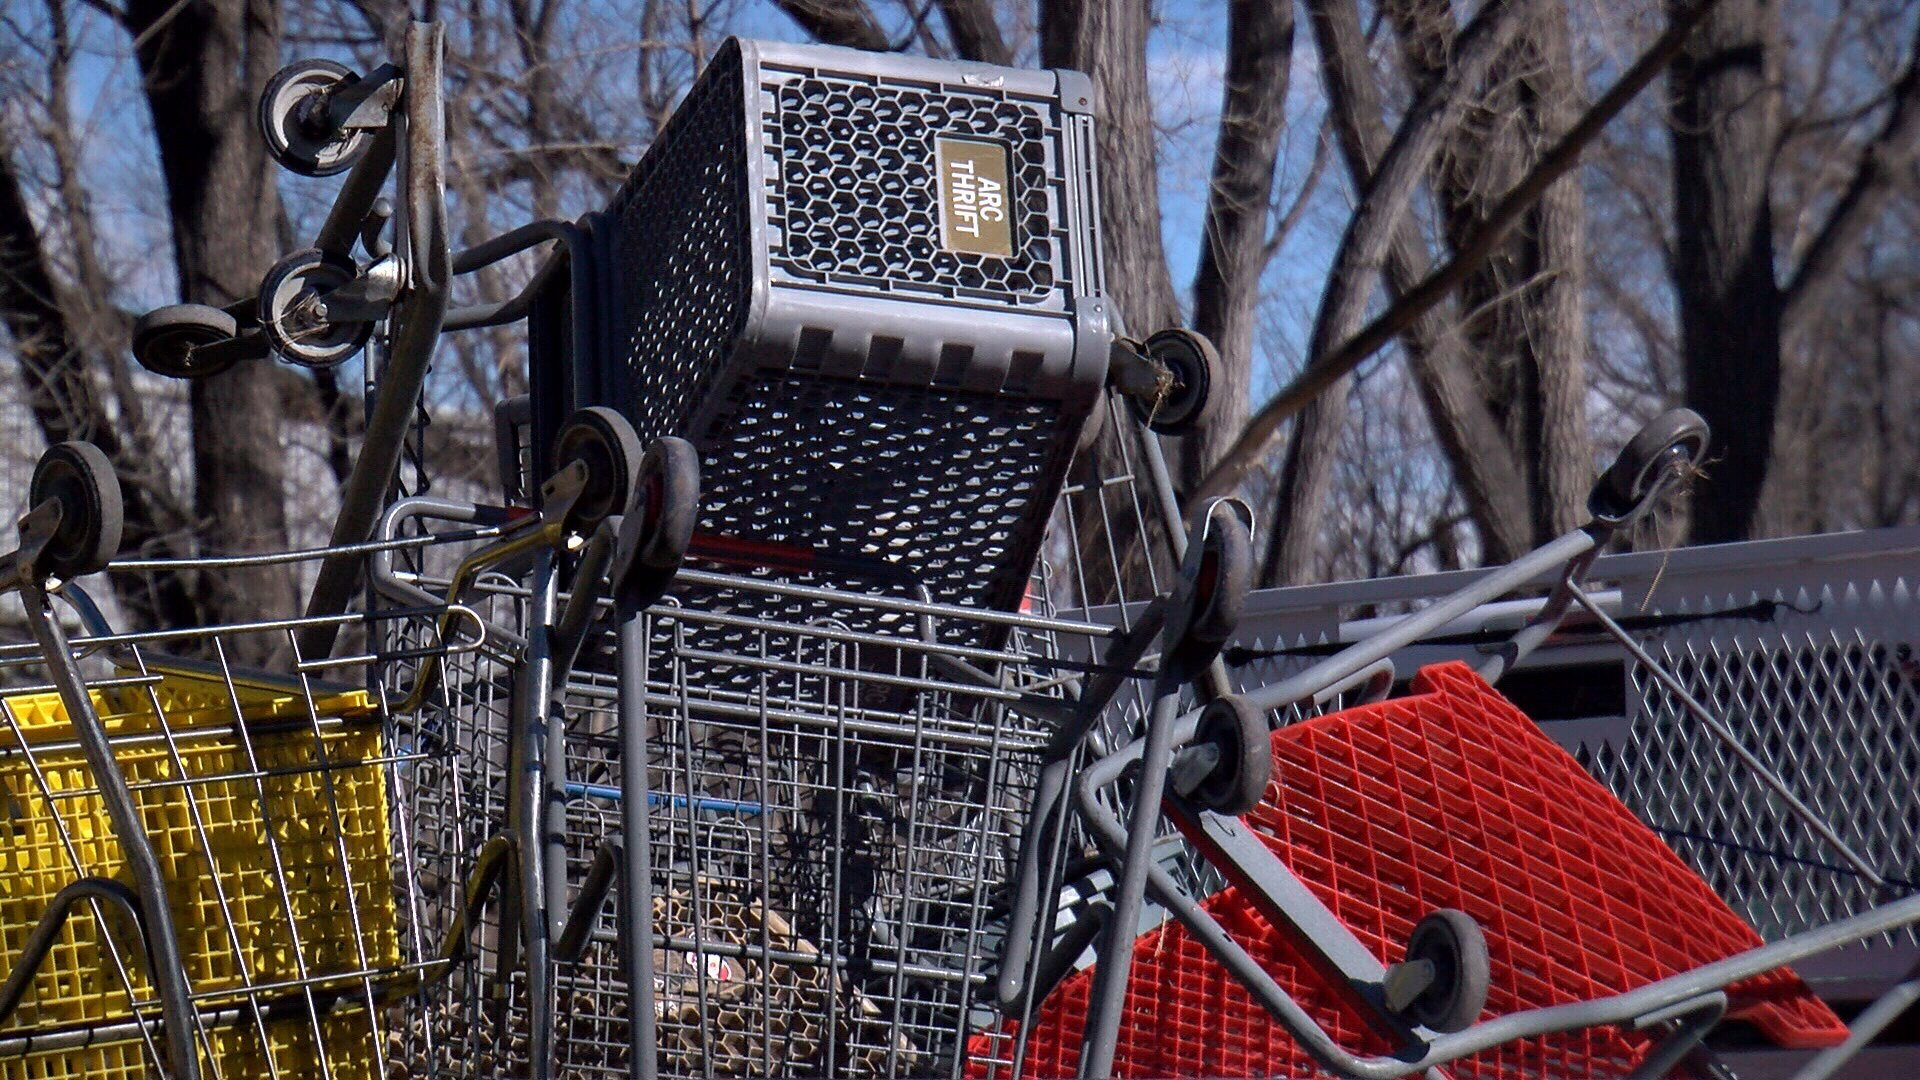 Grocery carts found within a homeless camp in Colorado Springs. (KOAA)